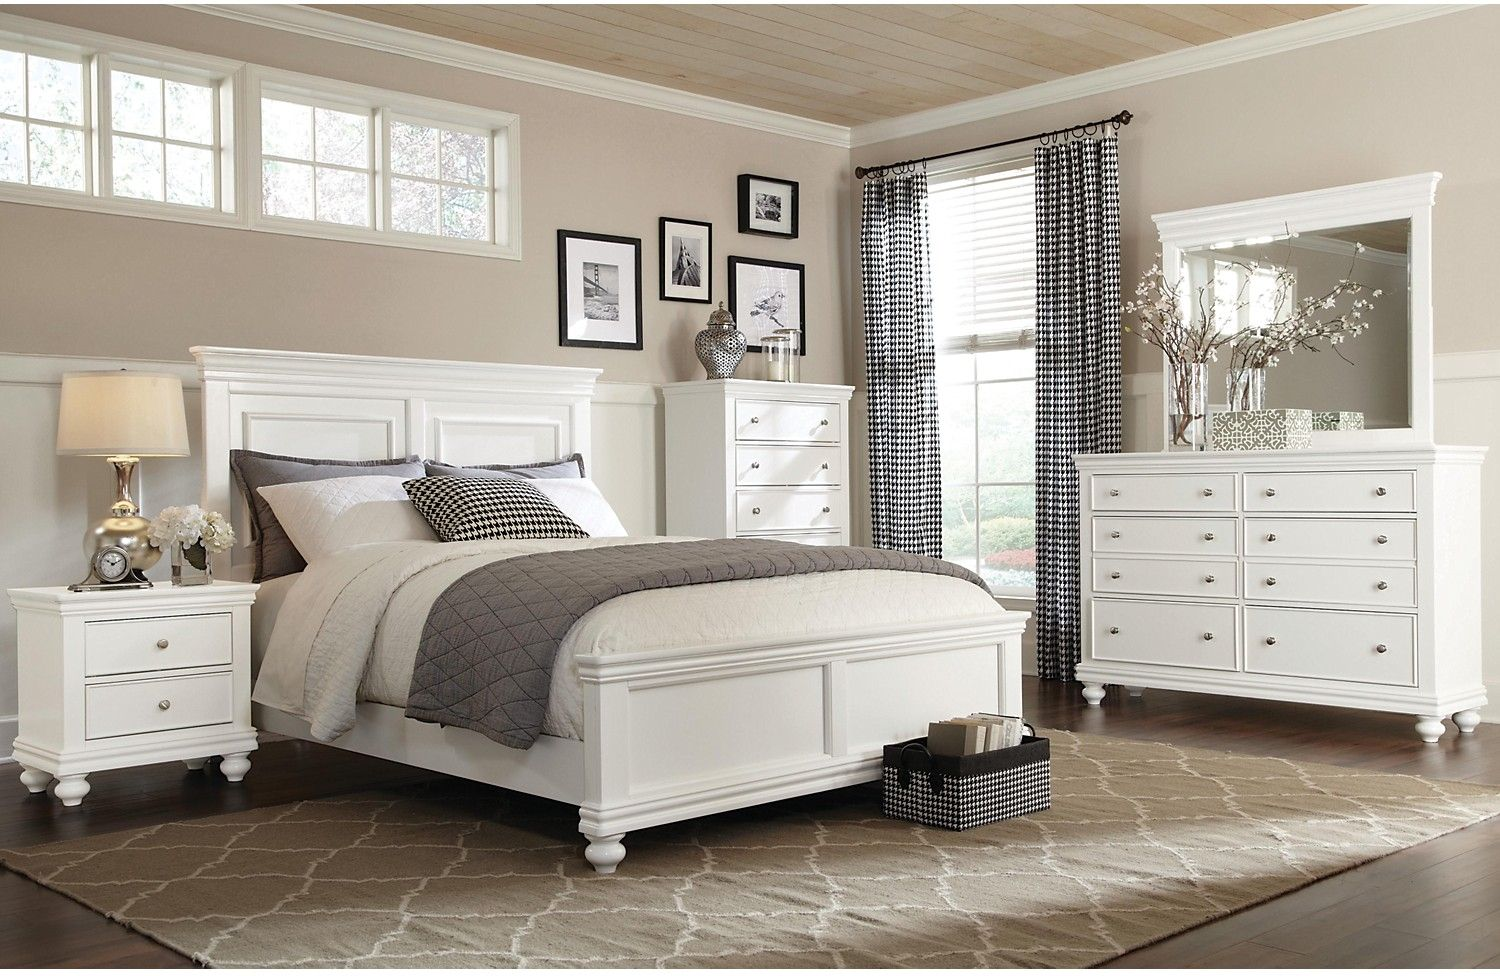 Bridgeport 6 piece queen bedroom set white queen - Cheap bedroom furniture sets online ...